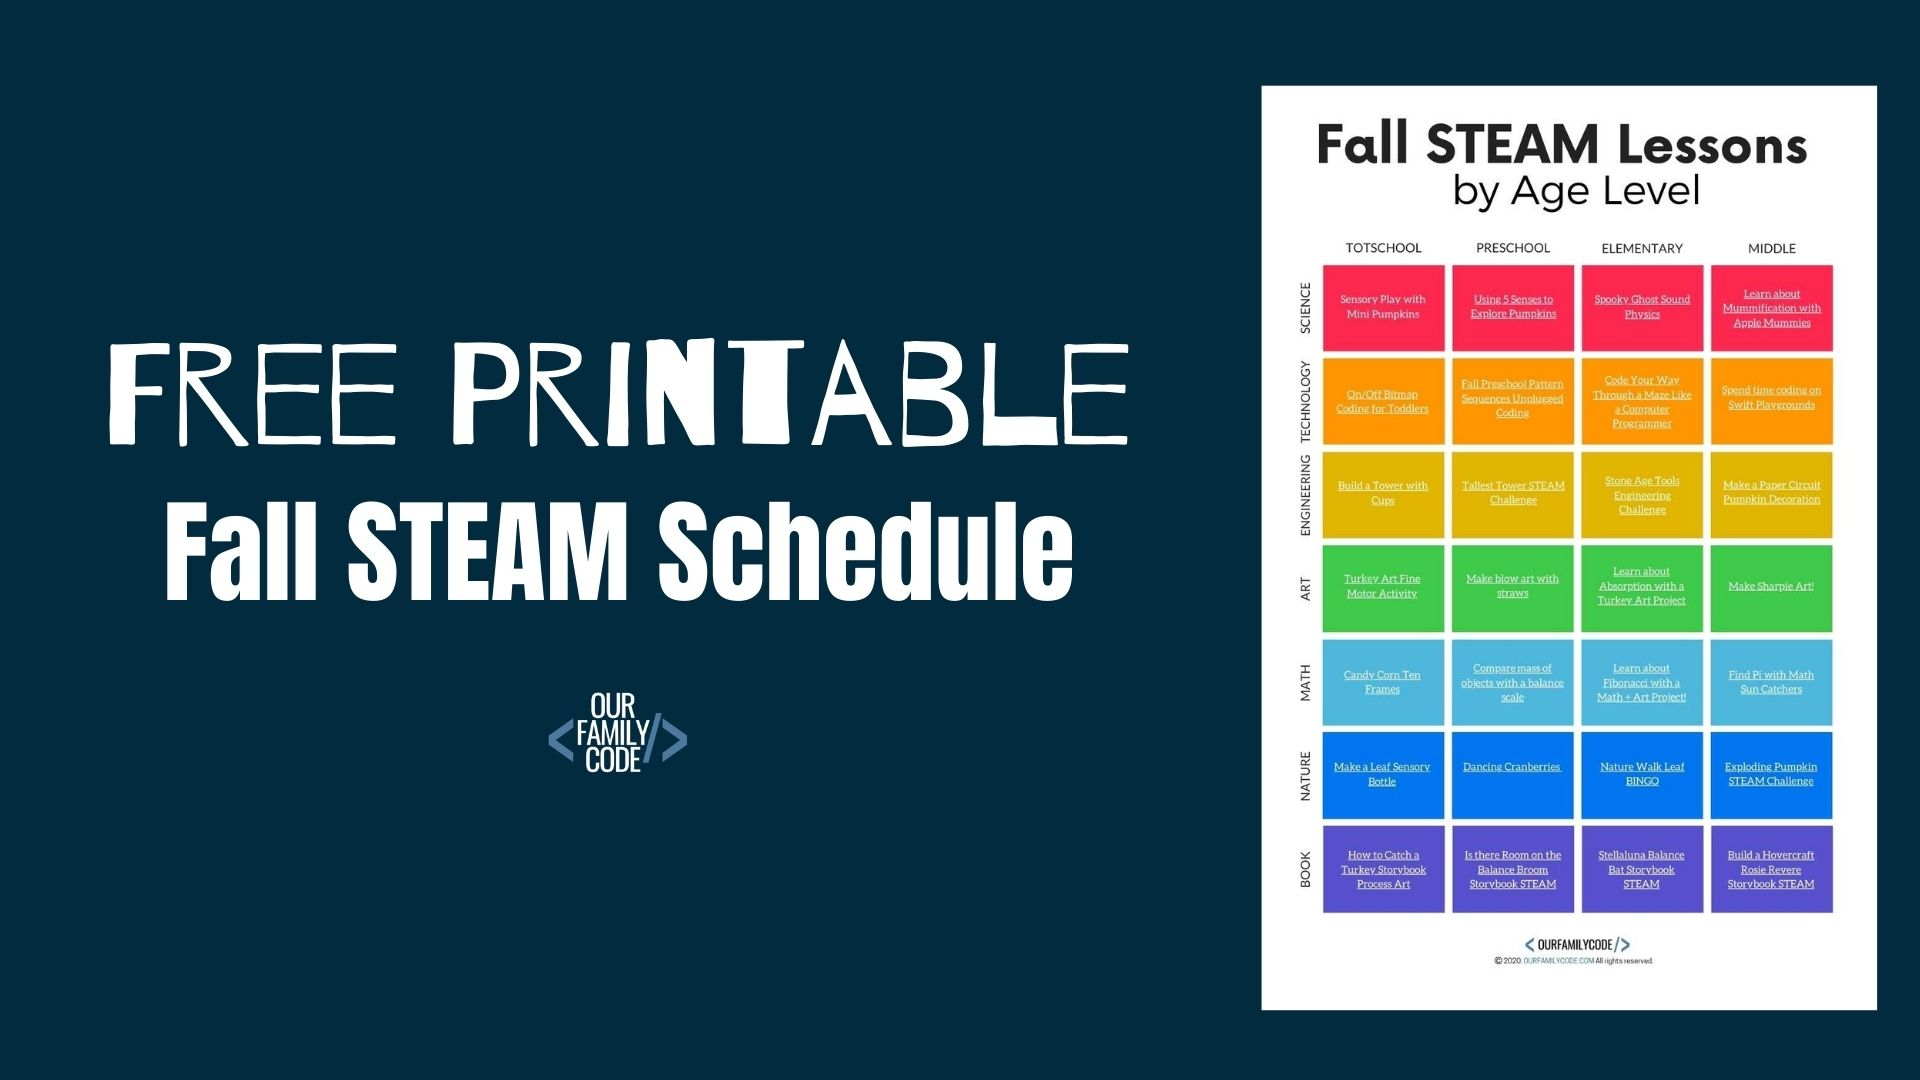 Fall STEAM Lessons by Age: Printable STEAM Schedule